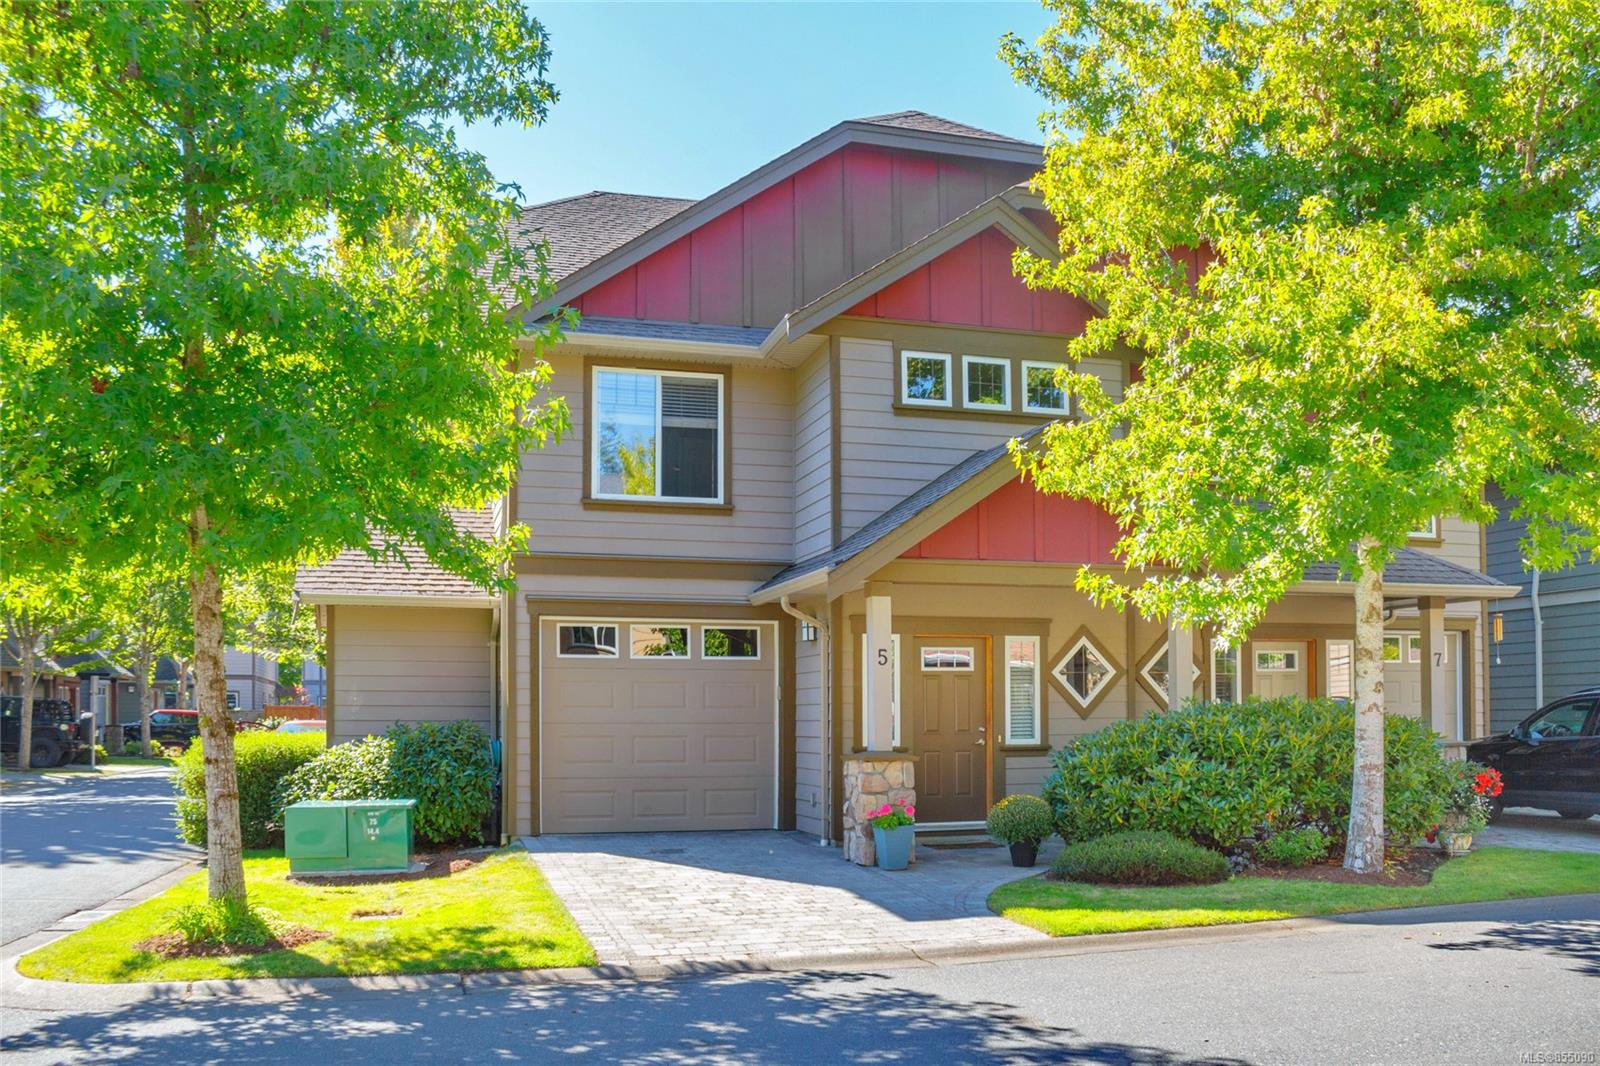 Main Photo: 5 2210 Sooke Rd in : Co Hatley Park Row/Townhouse for sale (Colwood)  : MLS®# 855090